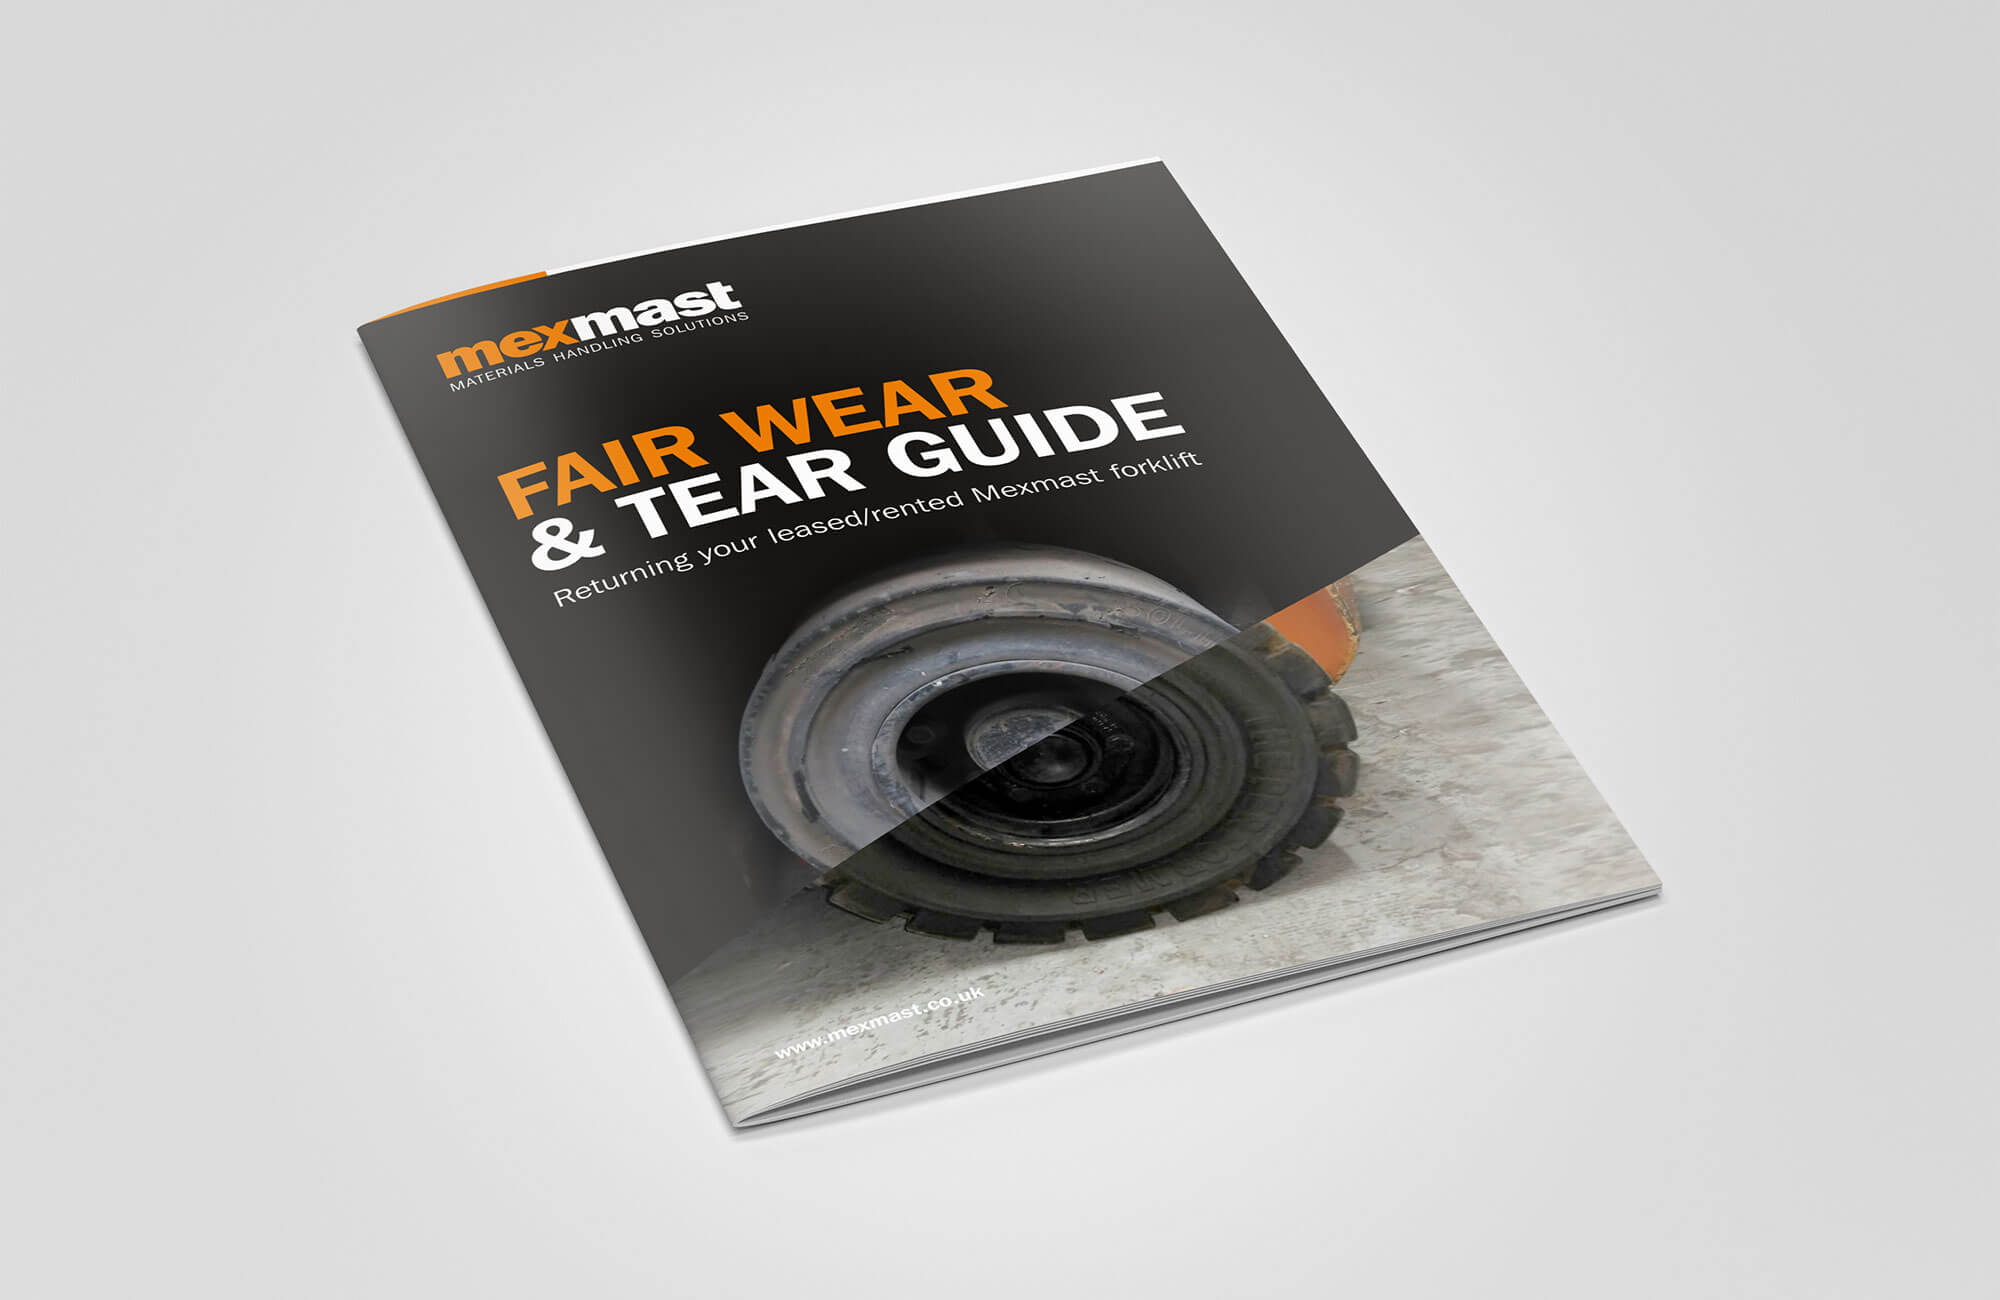 Mexmast Wear & Tear Guide Cover Design